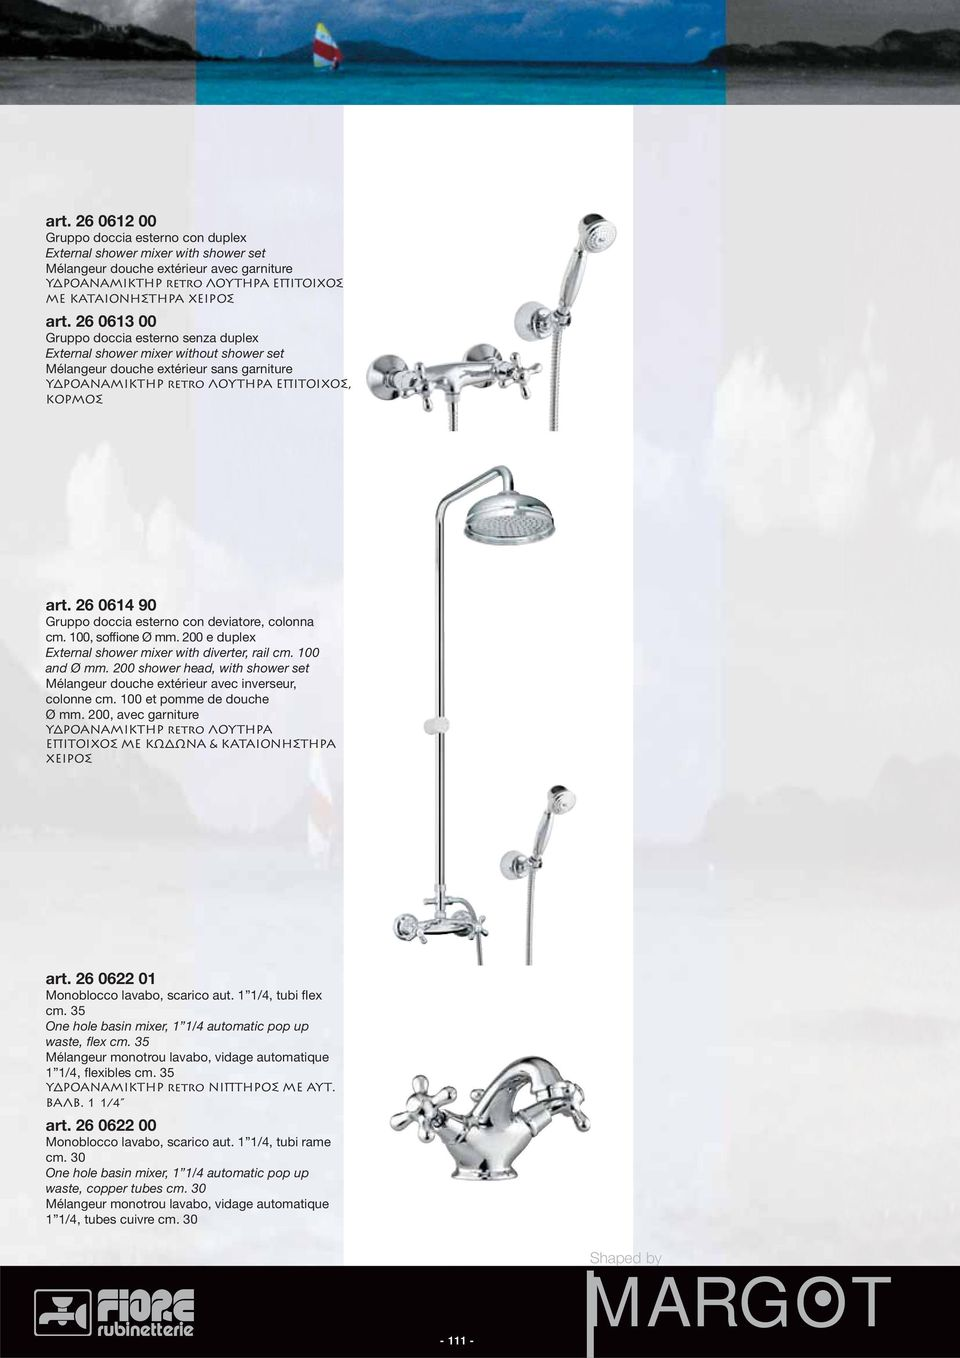 26 0614 90 Gruppo doccia esterno con deviatore, colonna cm. 100, soffione Ø mm. 200 e duplex External shower mixer with diverter, rail cm. 100 and Ø mm.